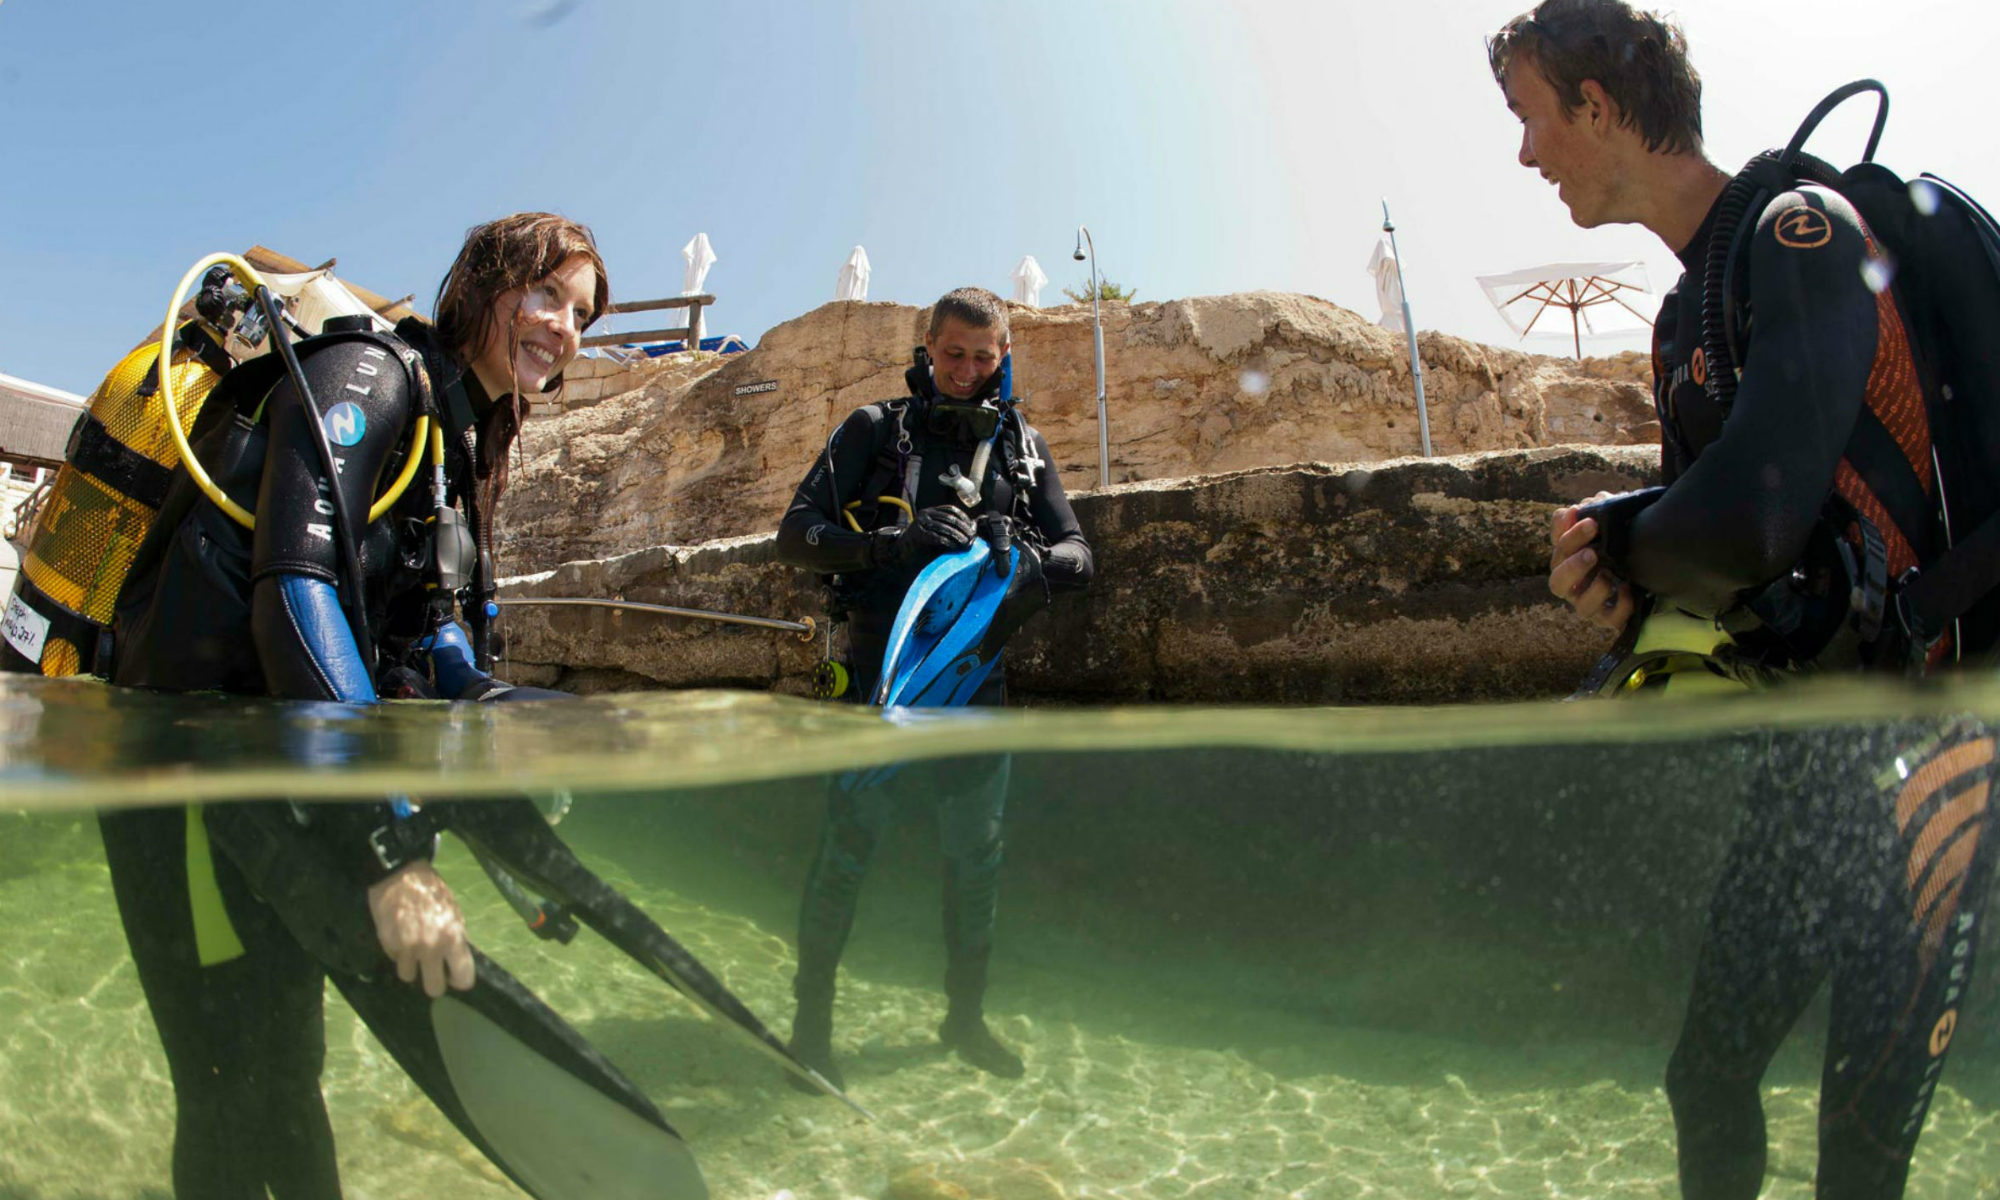 A group of divers gearing up in shallow water, preparing to go scuba diving in Malta.